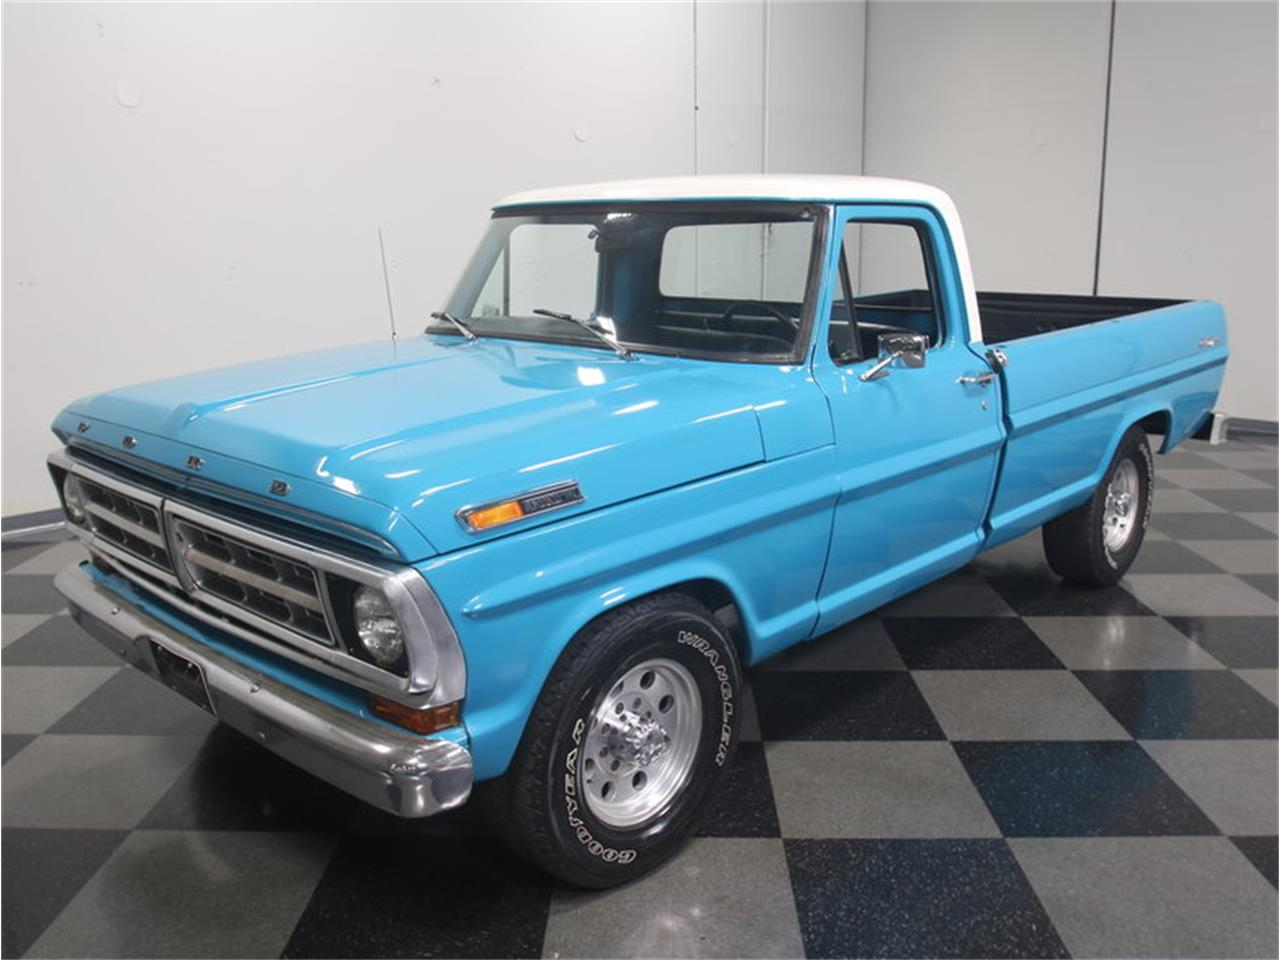 Large Picture of Classic '72 F-250 Ranger located in Georgia - $14,995.00 - MO82